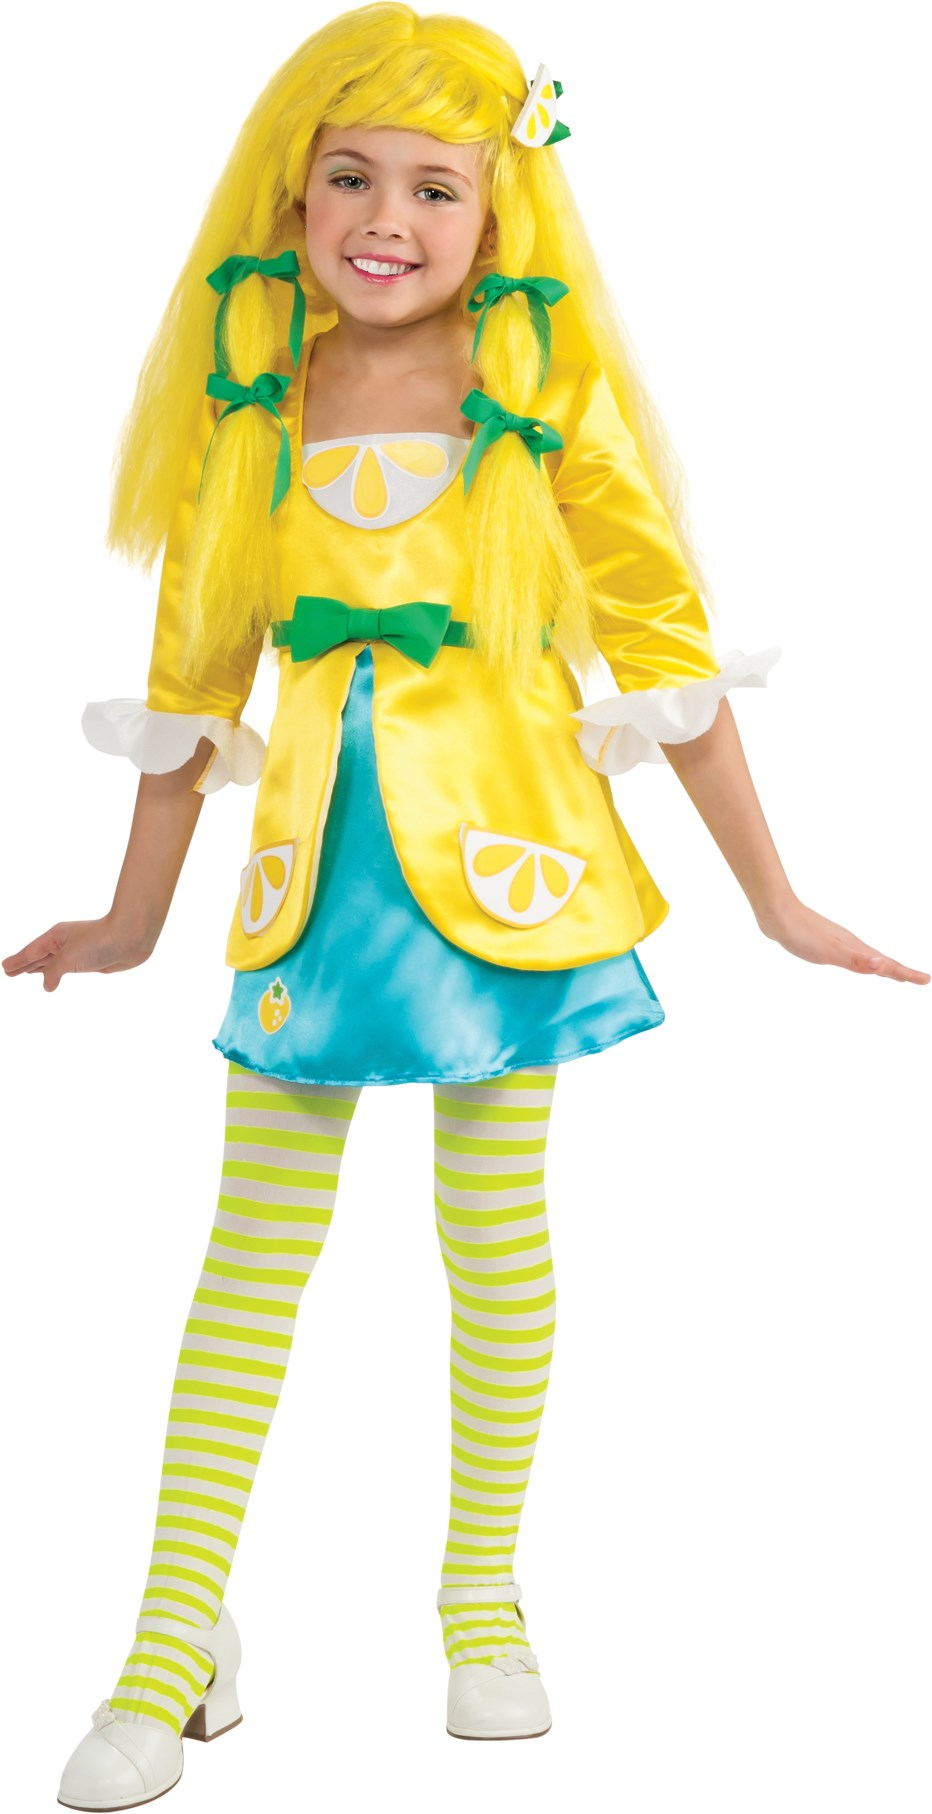 Strawberry Shortcake - Lemon Meringue Deluxe Toddler / Child Costume Medium